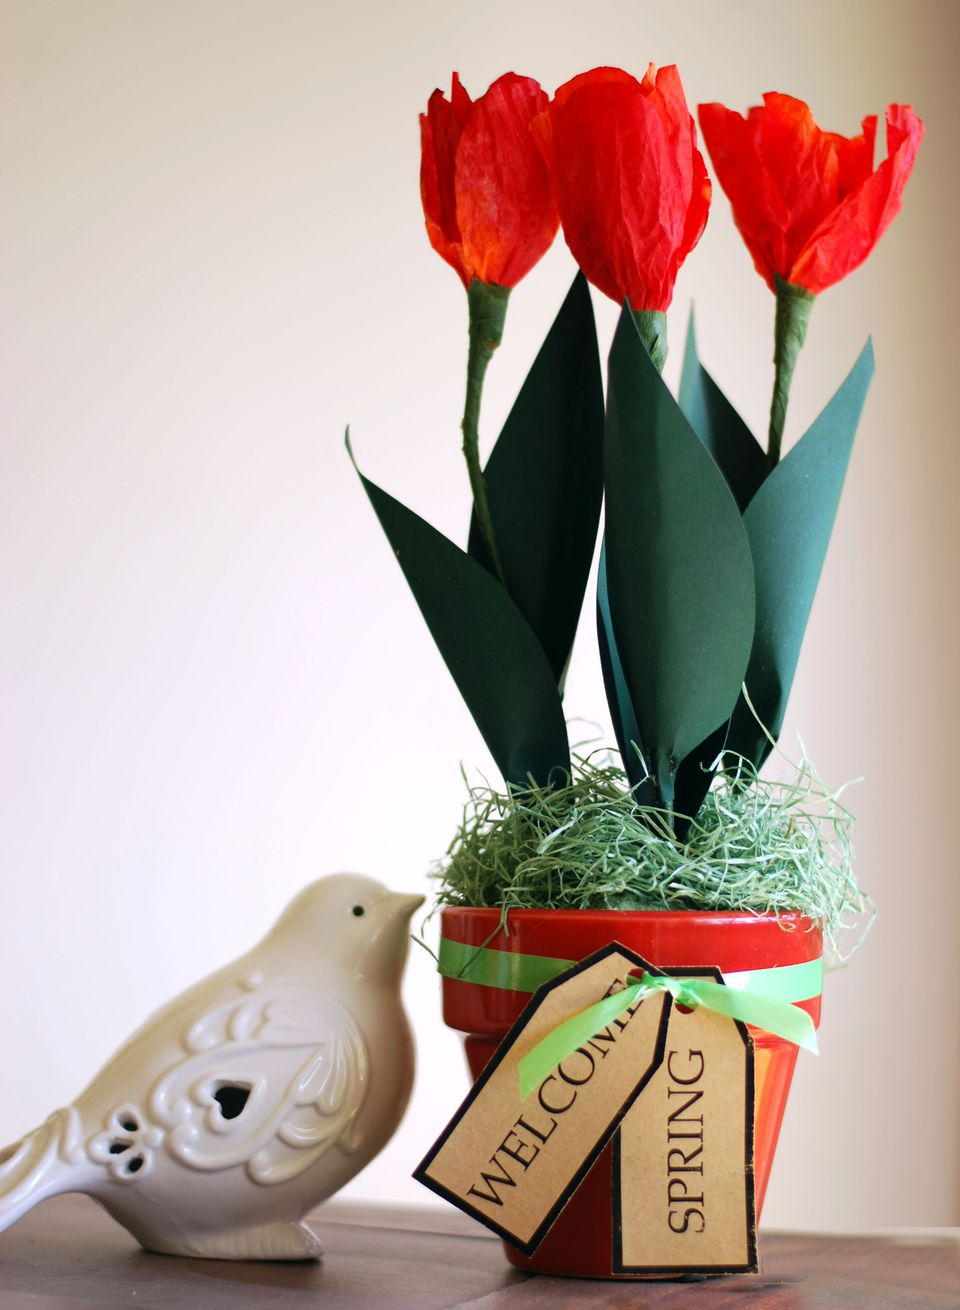 How to make a paper tulip spring floral arrangement dhlflorist Image collections